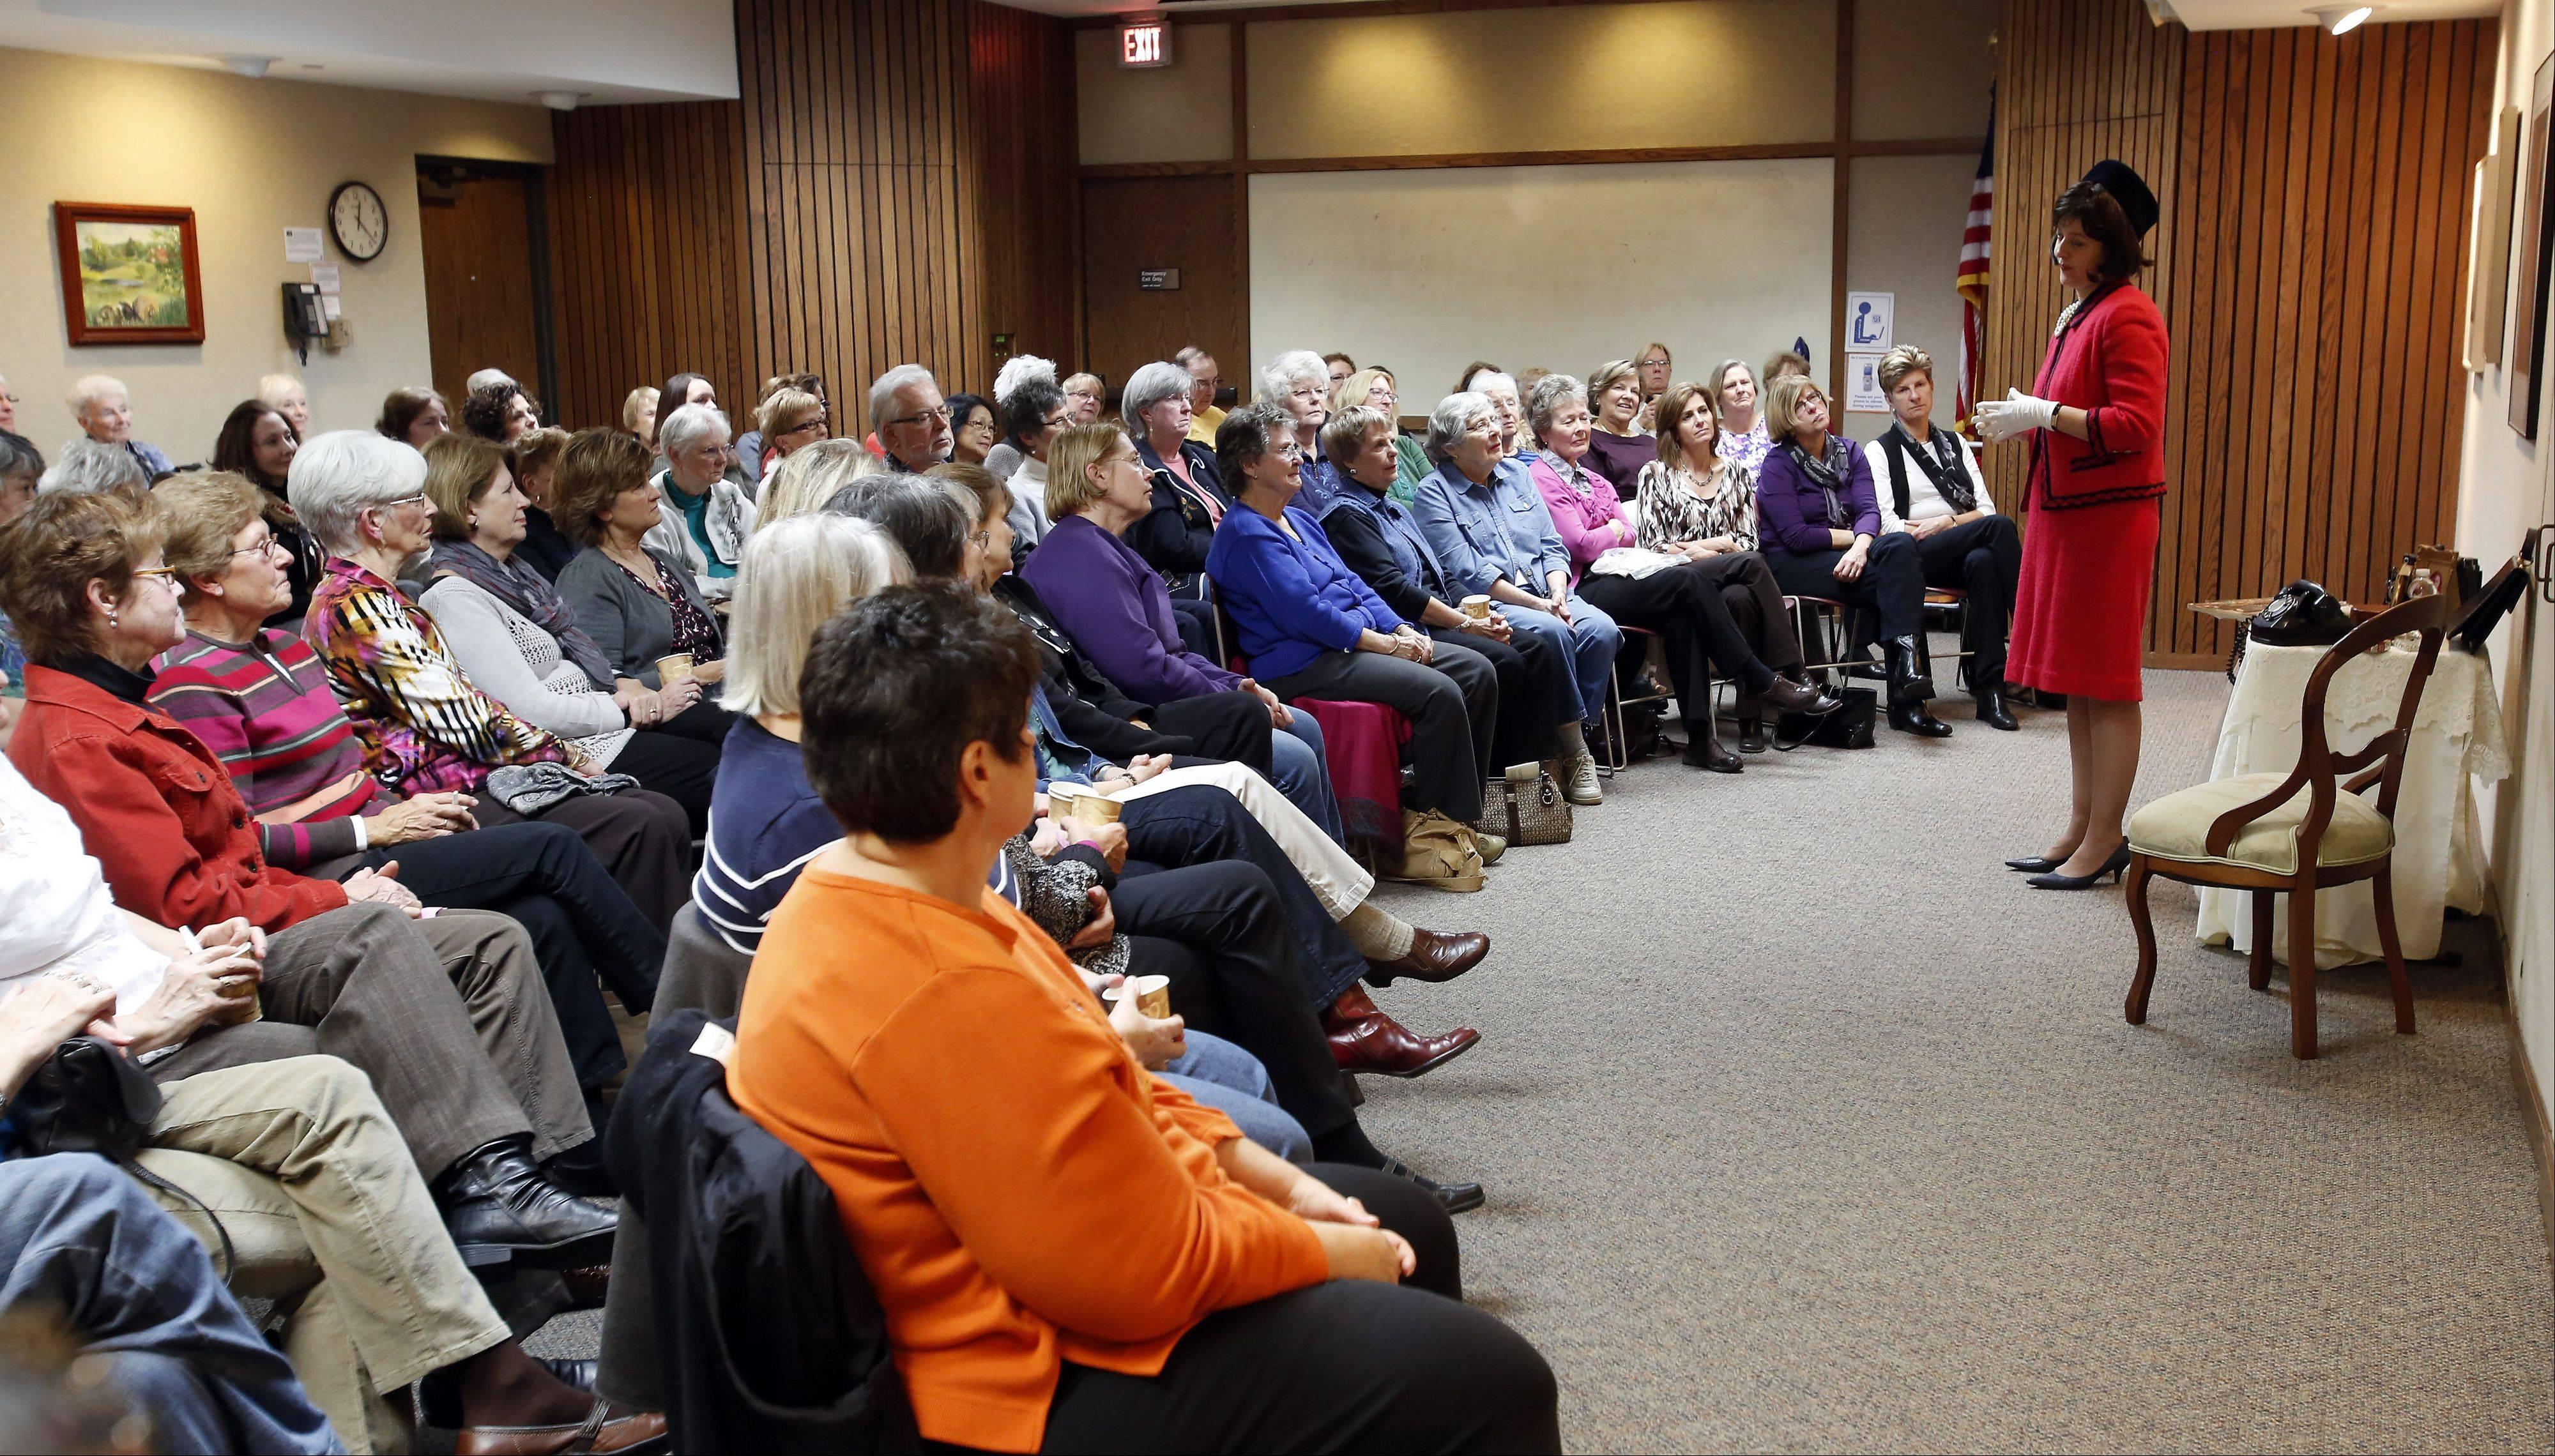 Actress and historian Leslie Goddard portrays Jacqueline Kennedy to a packed room at a special program commemorating the 50th anniversary of President John F. Kennedy´s death Tuesday in the Huntley Meeting Room at the St. Charles Public Library.